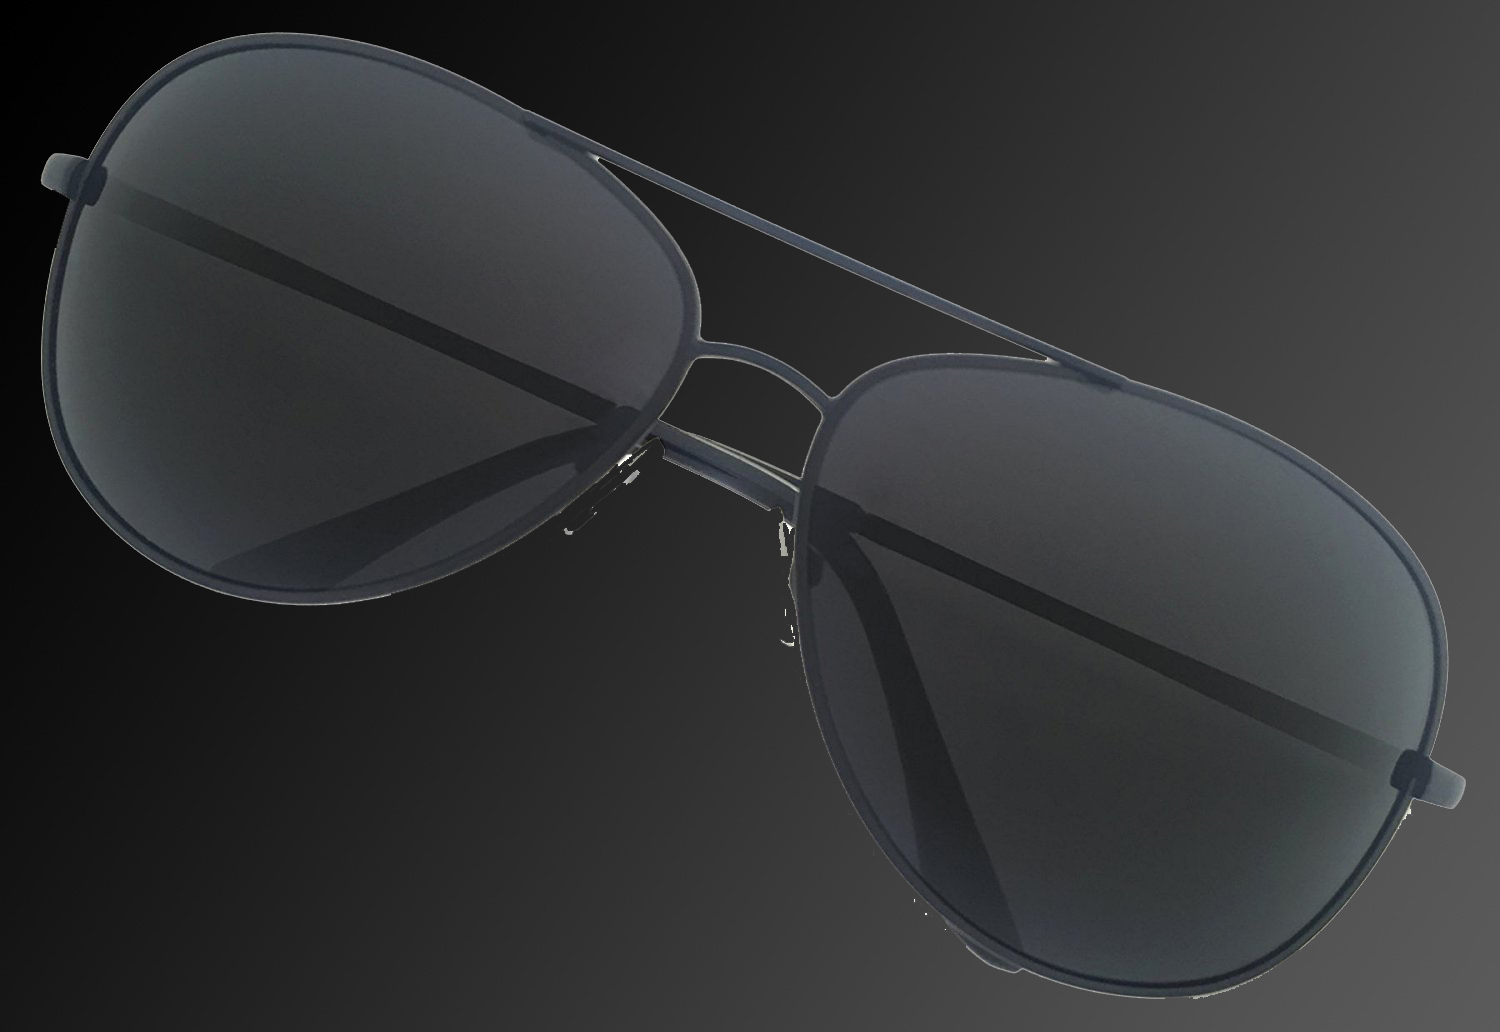 Get ready for summer weather with 2 pairs of best-selling unisex aviator sunglasses for $12